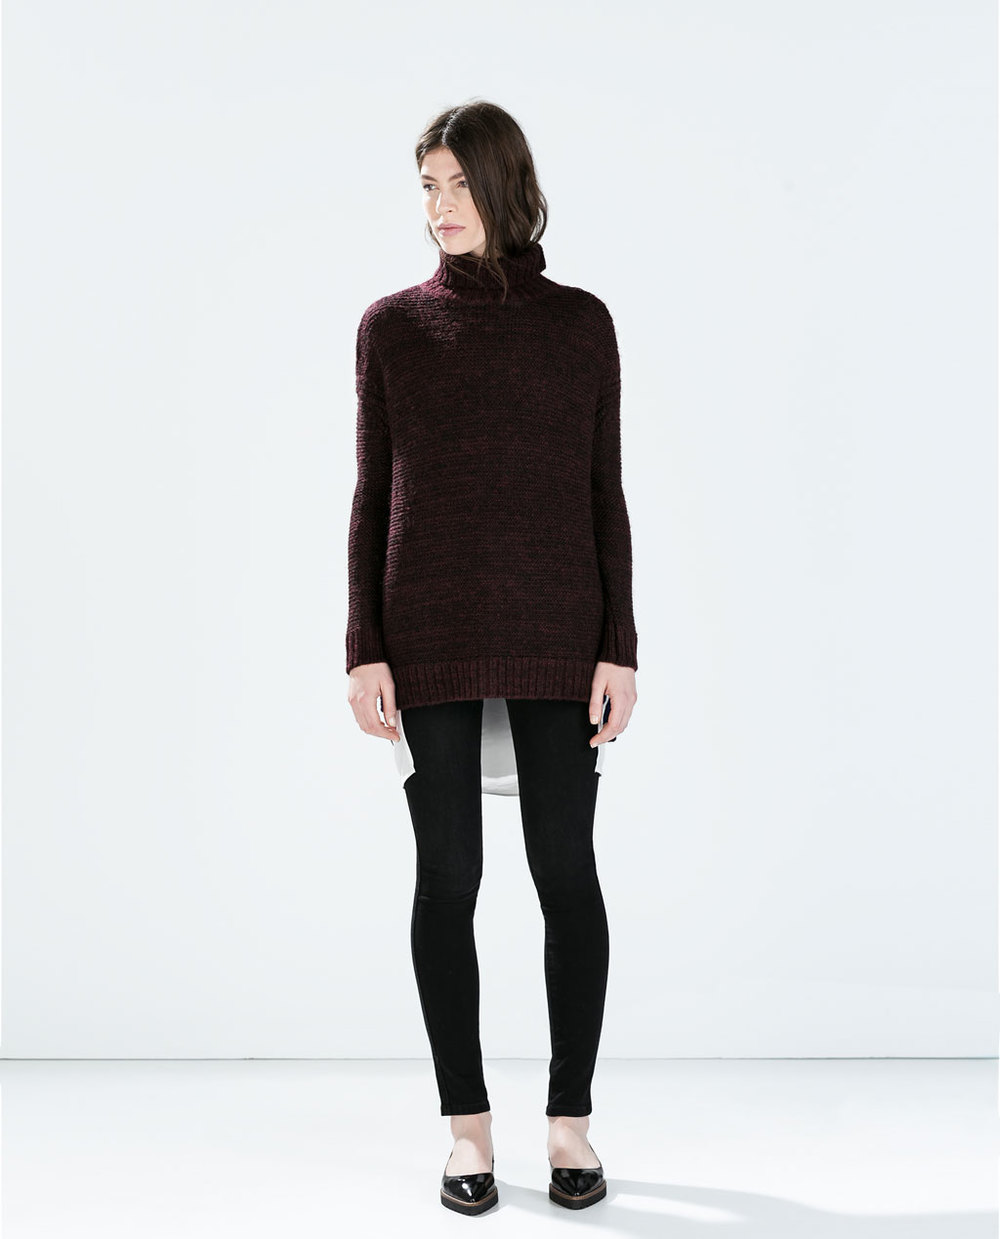 Detailed Knit Top. Available in dark aubergine, navy, black. Zara. $39.90.